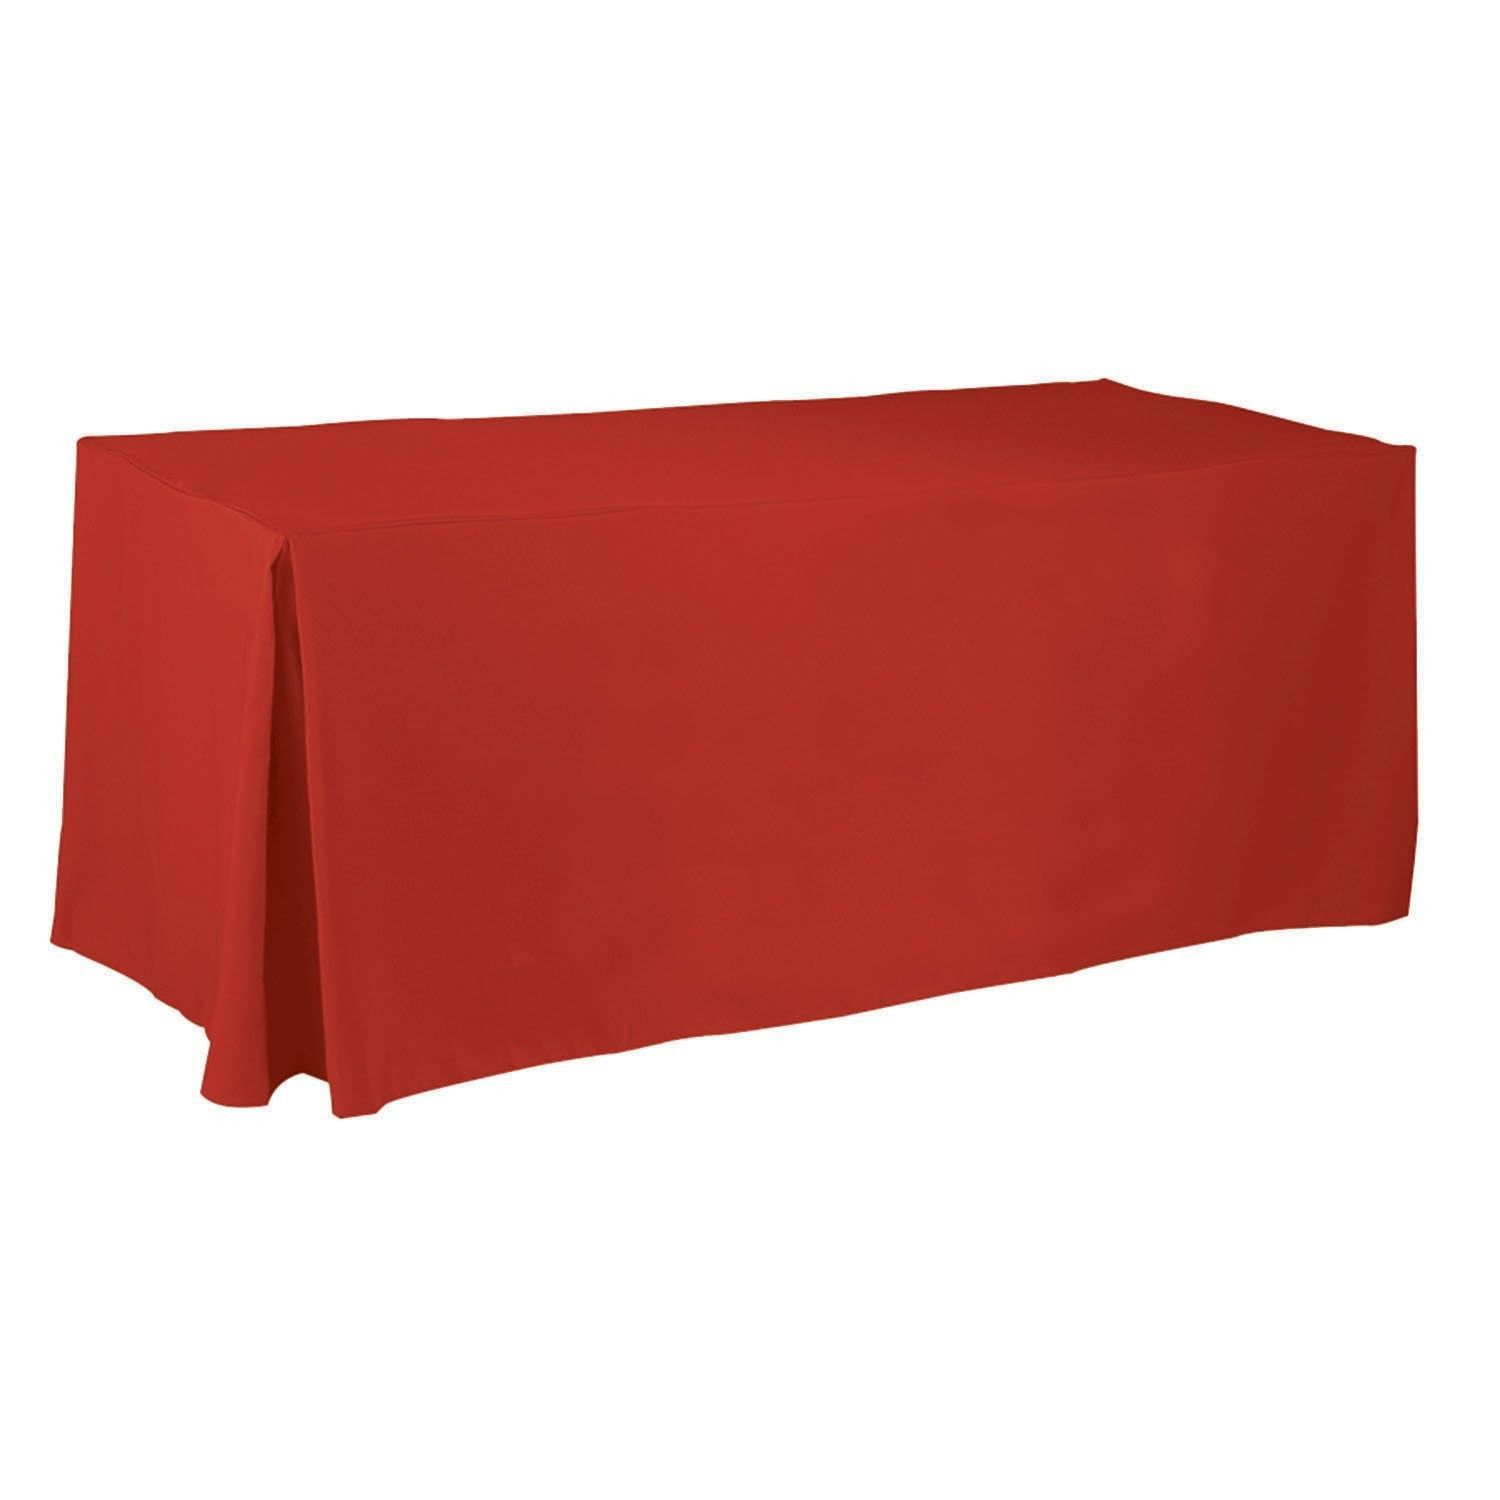 RED Cotton Fitted Table Cover - Complete Table Cover